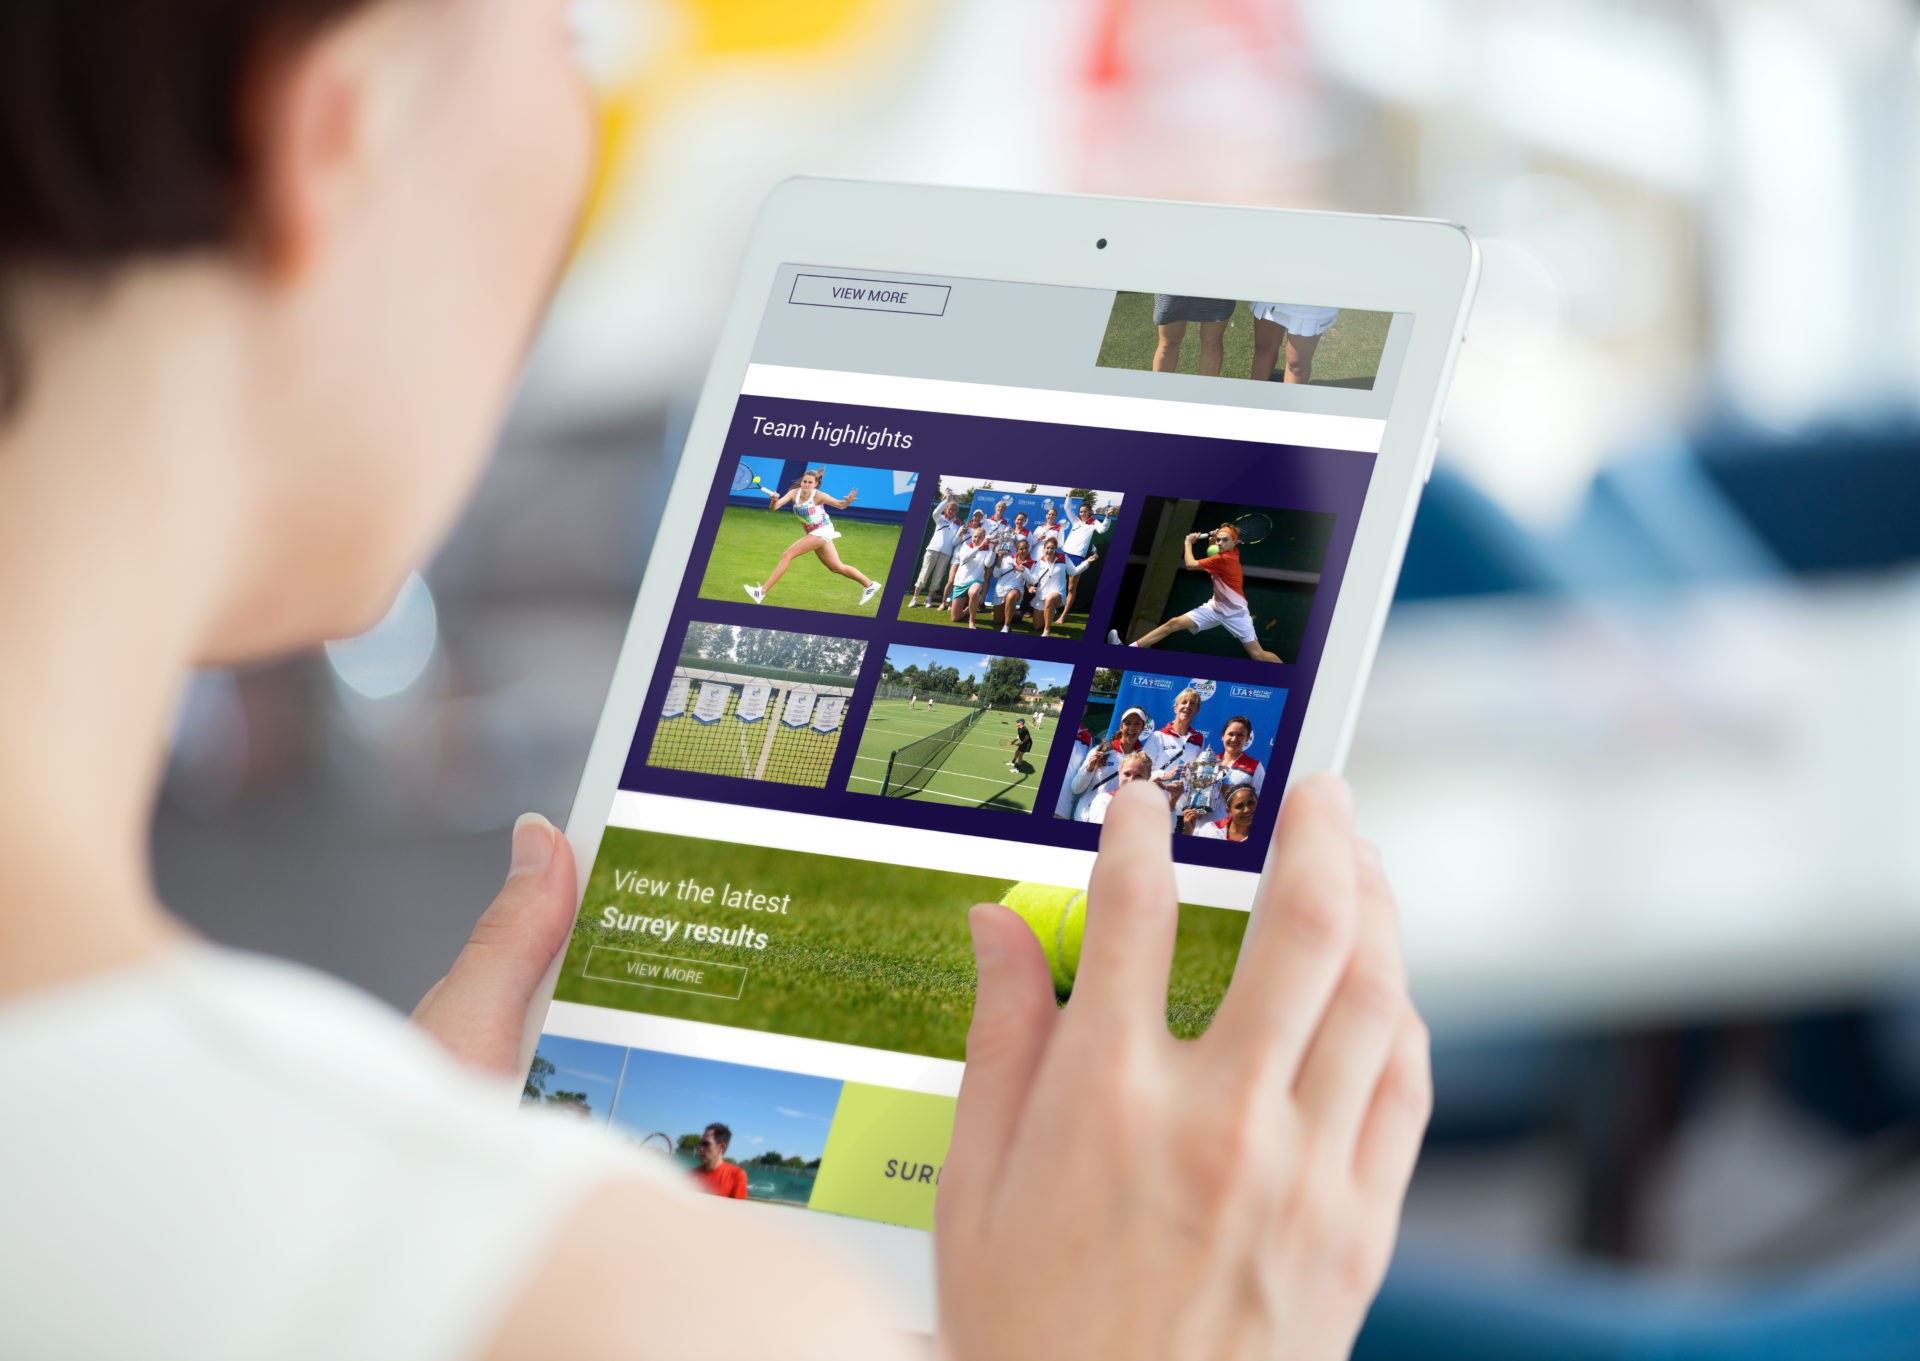 Surrey-Tennis-branding-web-design-email-marketing